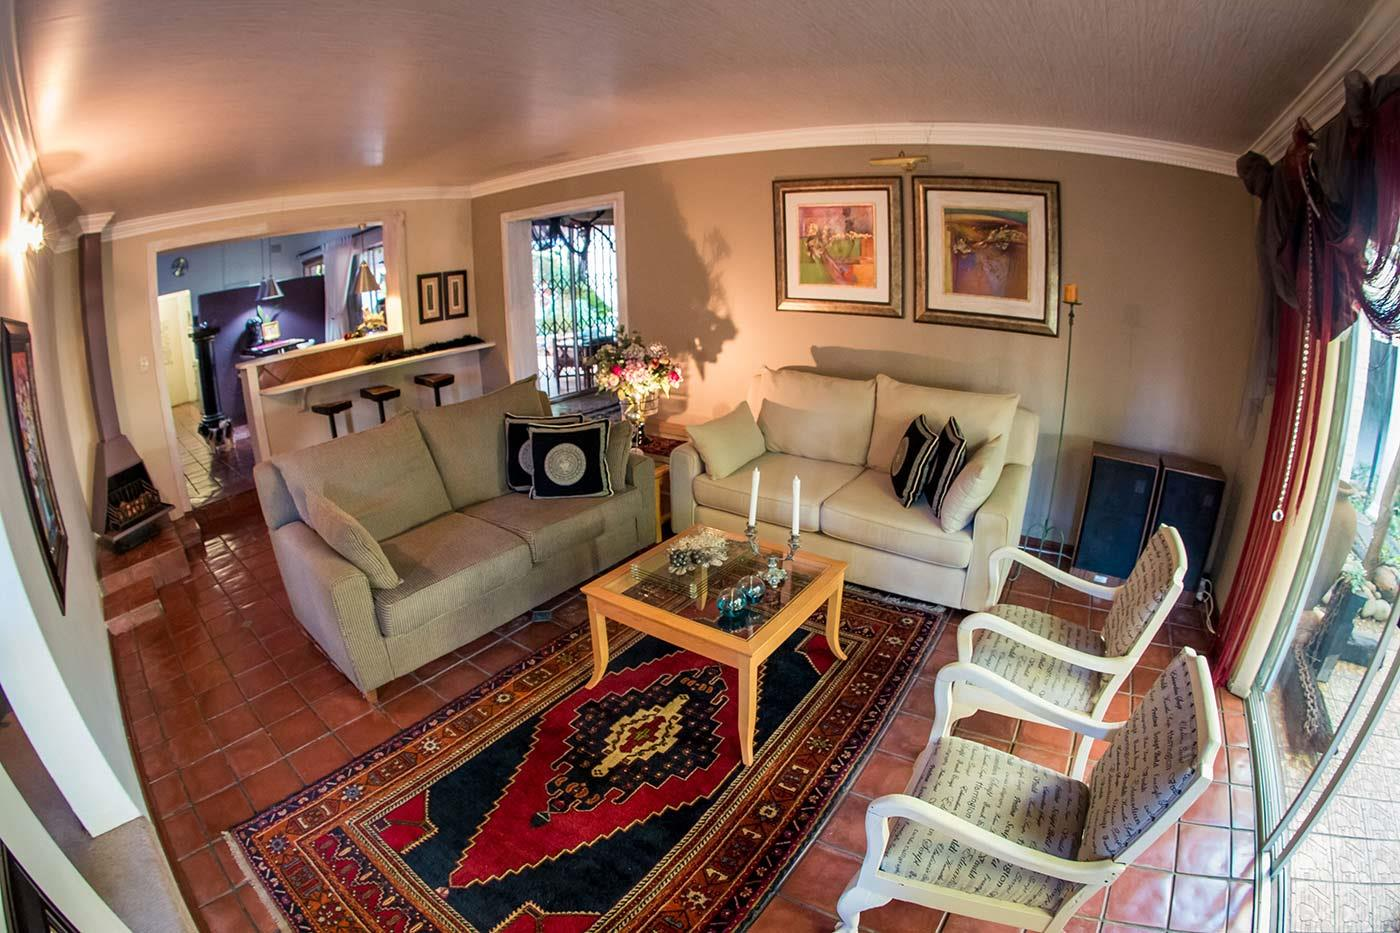 8 Bedroom House For Sale in Jan Kempdorp